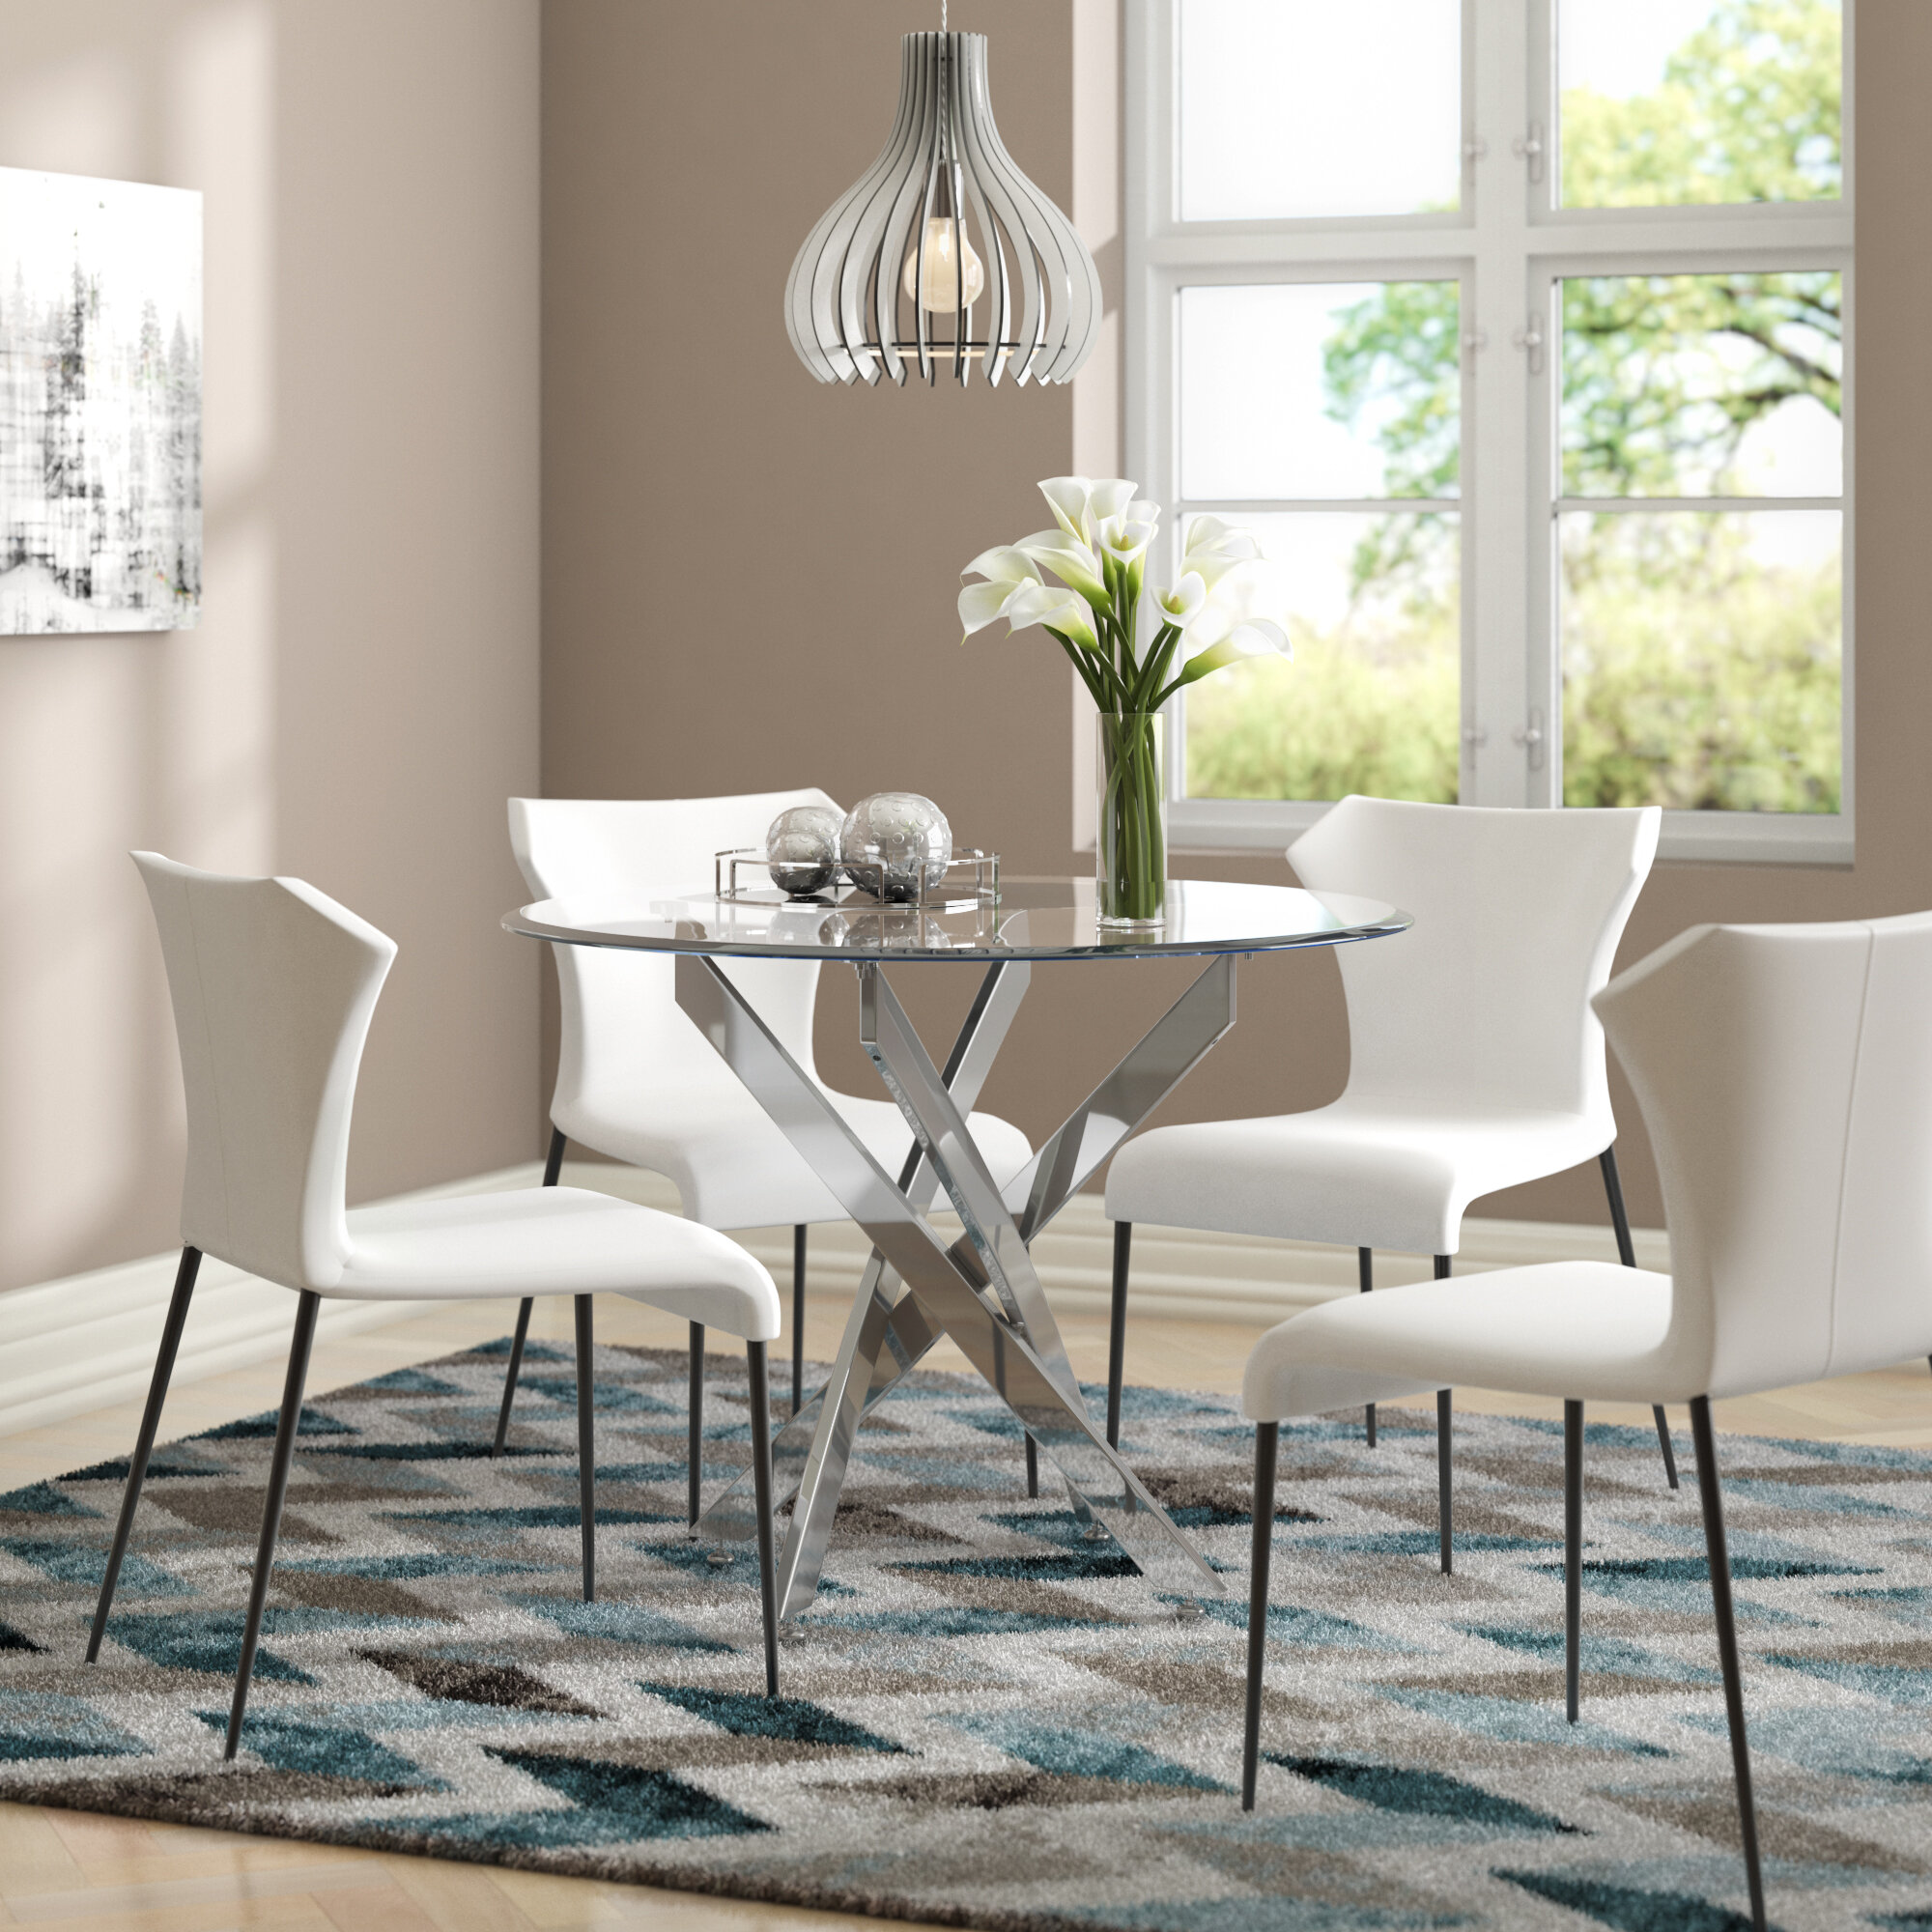 Smoked Glass Dining Table | Wayfair co uk